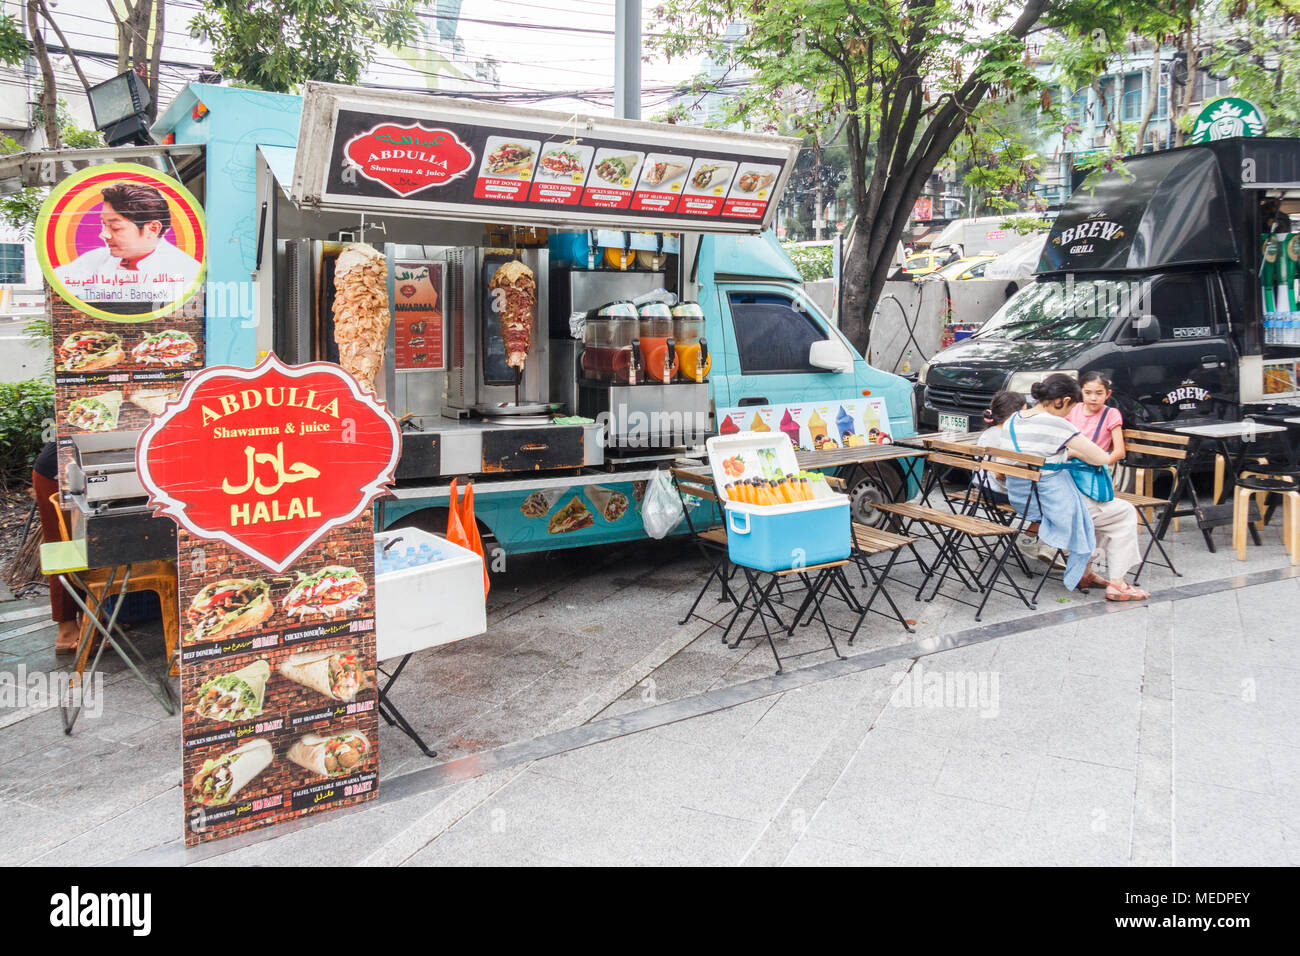 Halal Food Truck High Resolution Stock Photography And Images Alamy